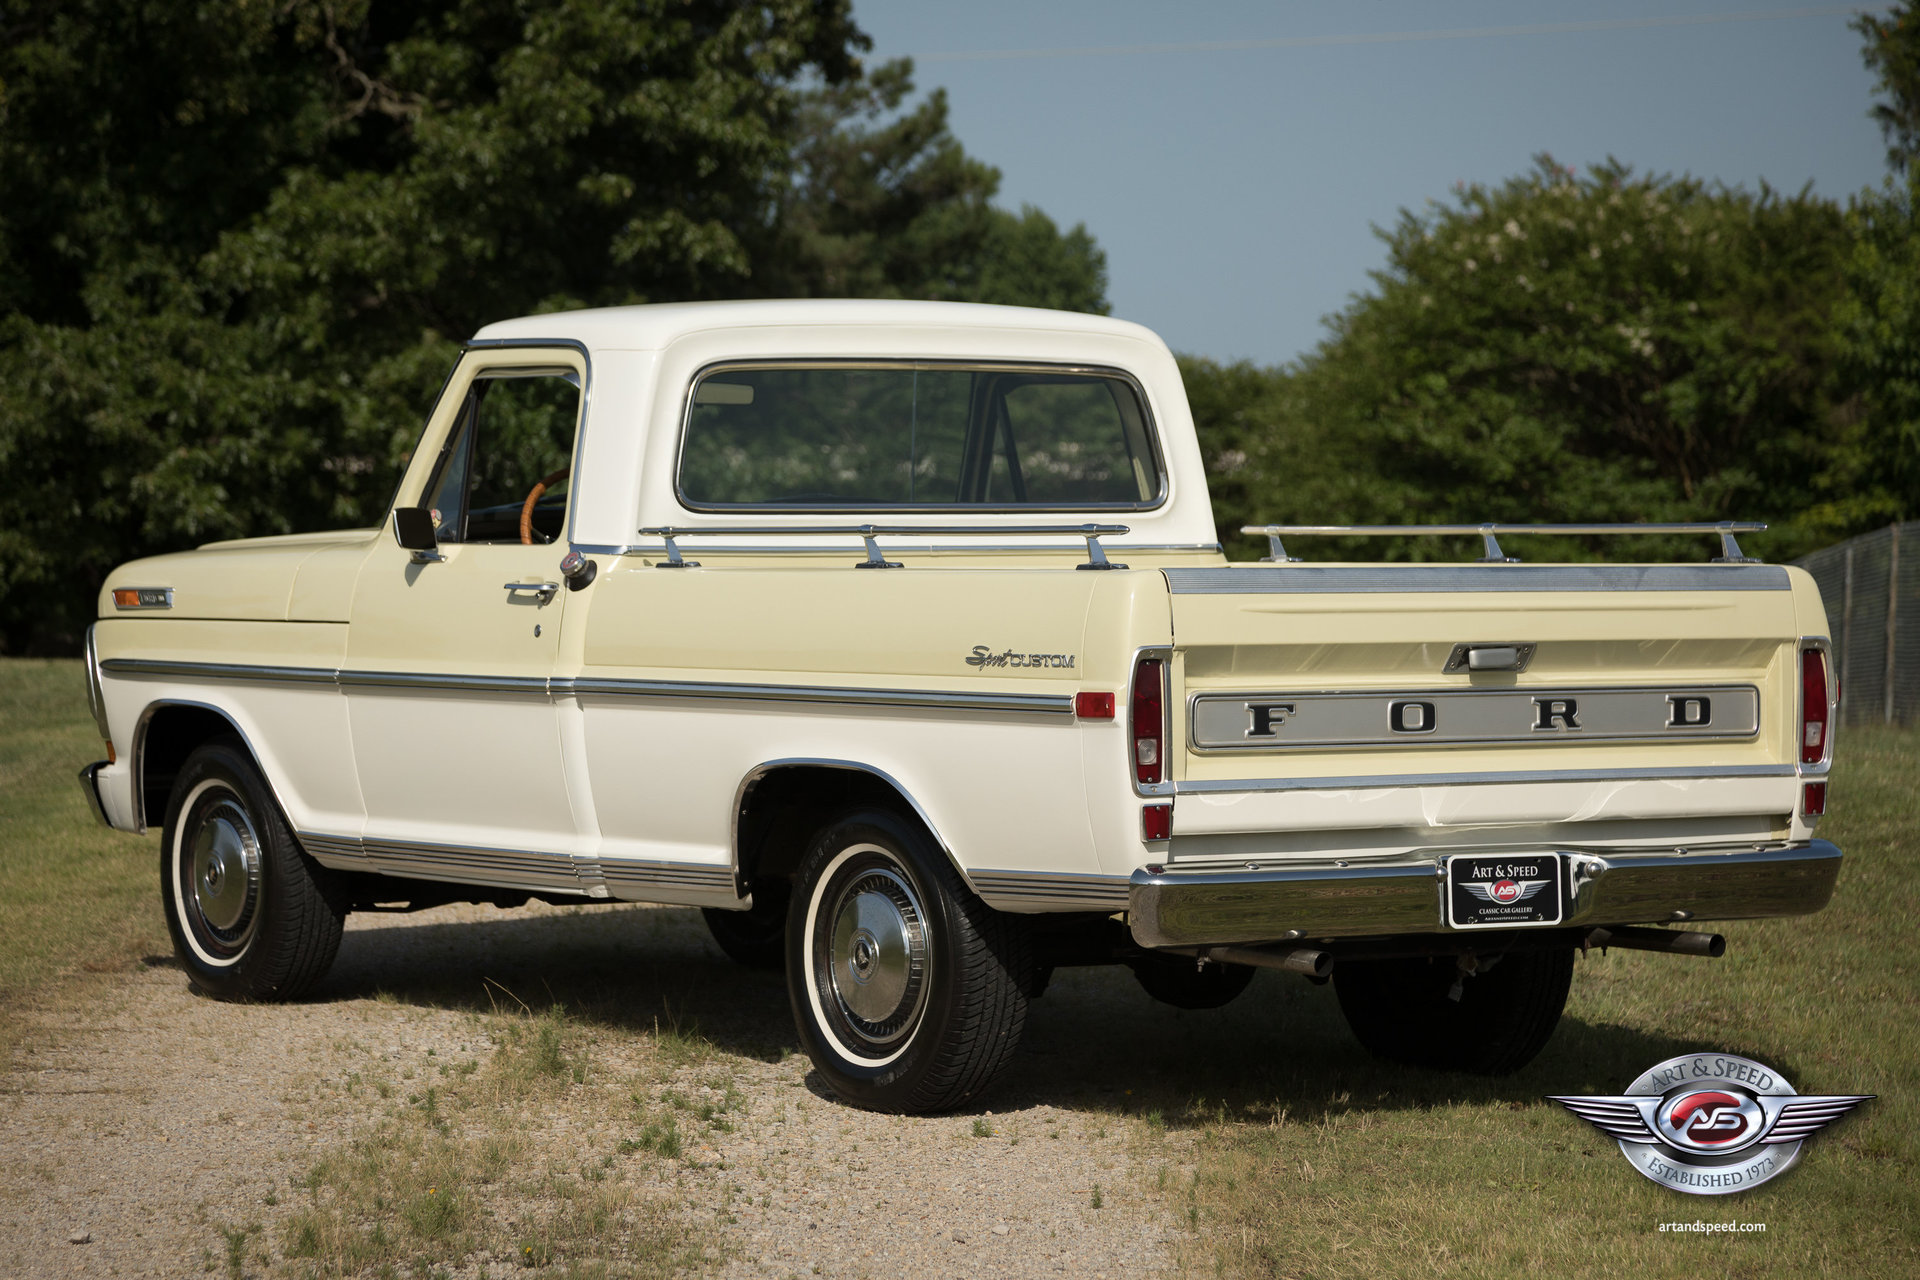 1970 Ford F100 Art Speed Classic Car Gallery In Memphis Tn Pickup Truck Description Specs And Options